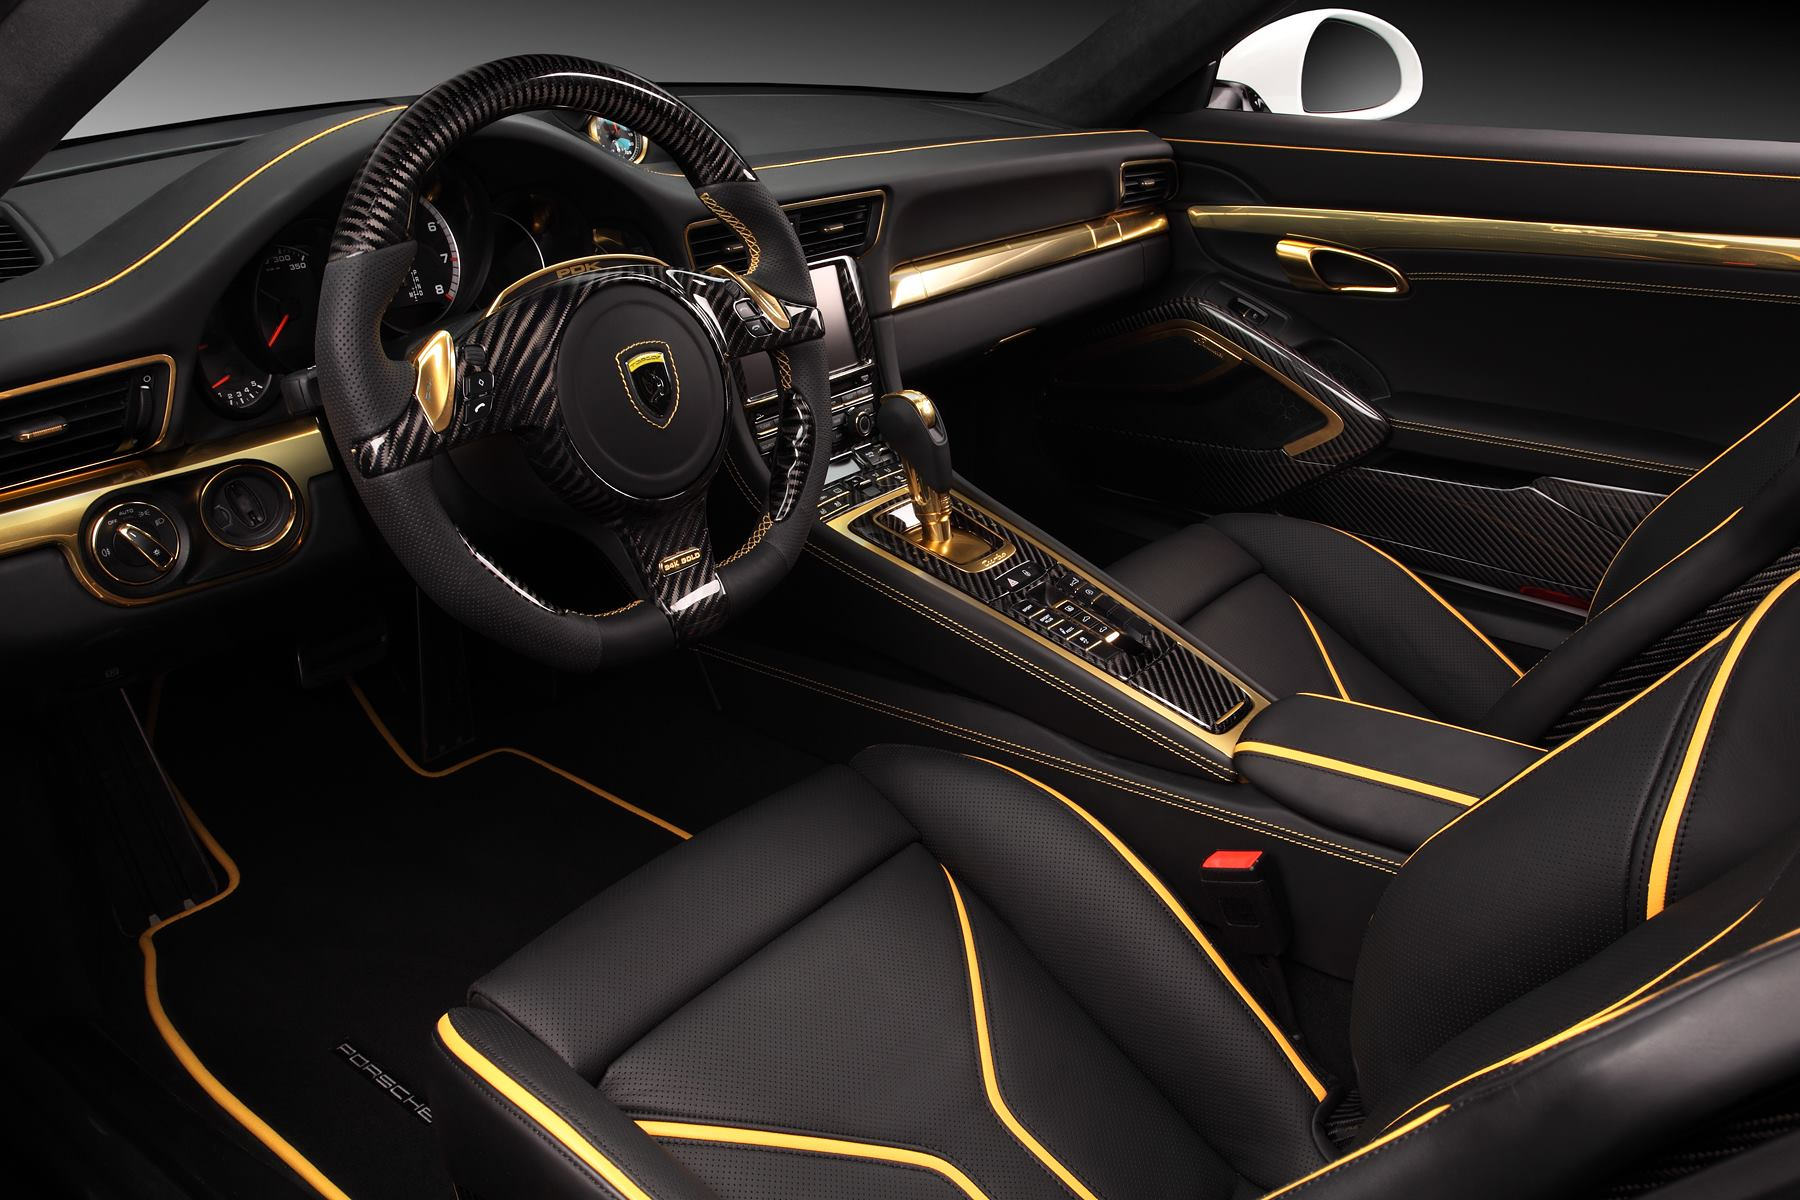 Porsche 911 Turbo Stinger Gtr By Topcar Has 24k Gold